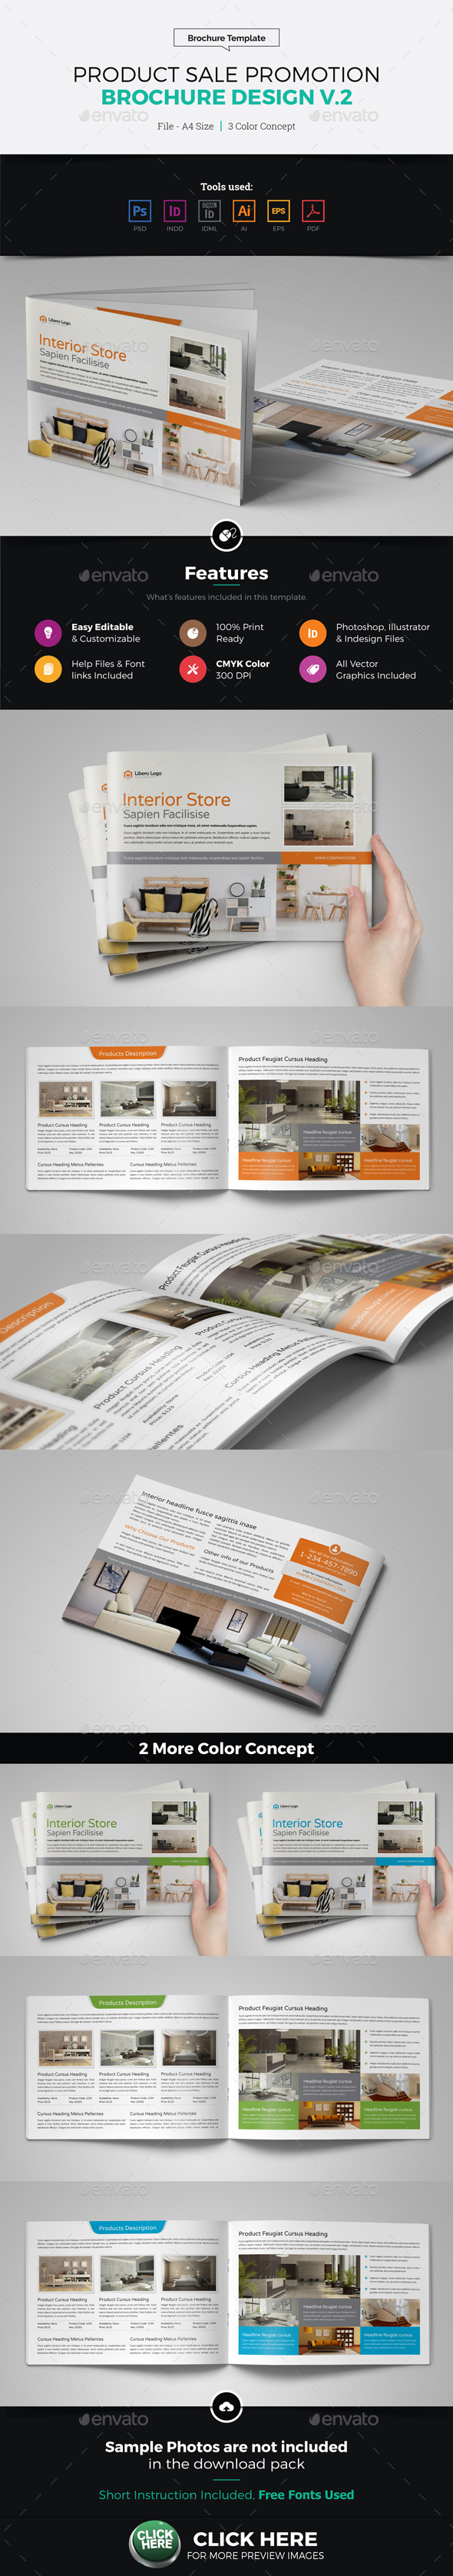 Product Sale Promotion Brochure Catalog v2 - Catalogs Brochures